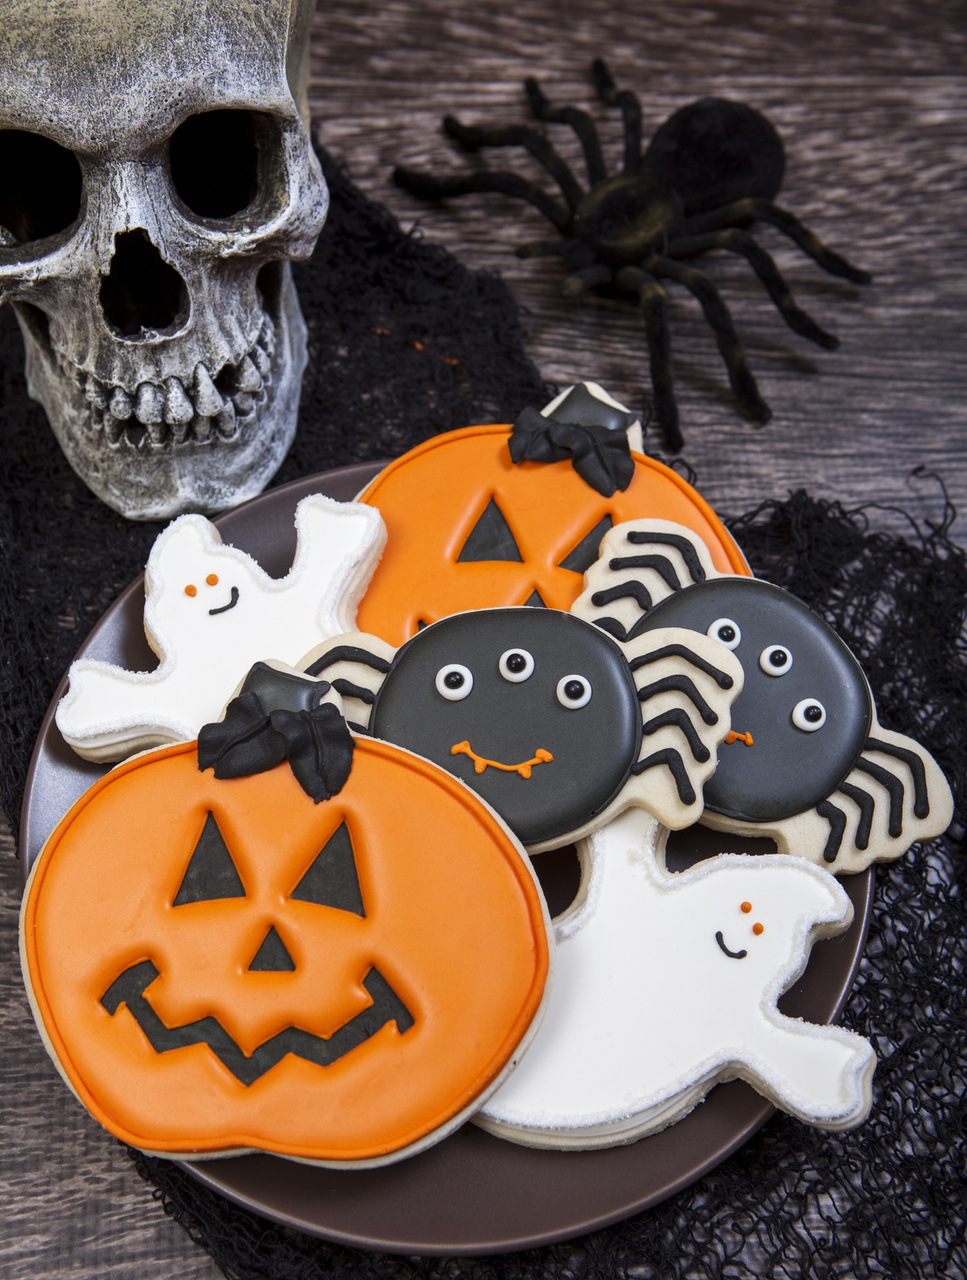 spooky cookie halloween cookie decorations - Halloween Cookies Decorating Ideas